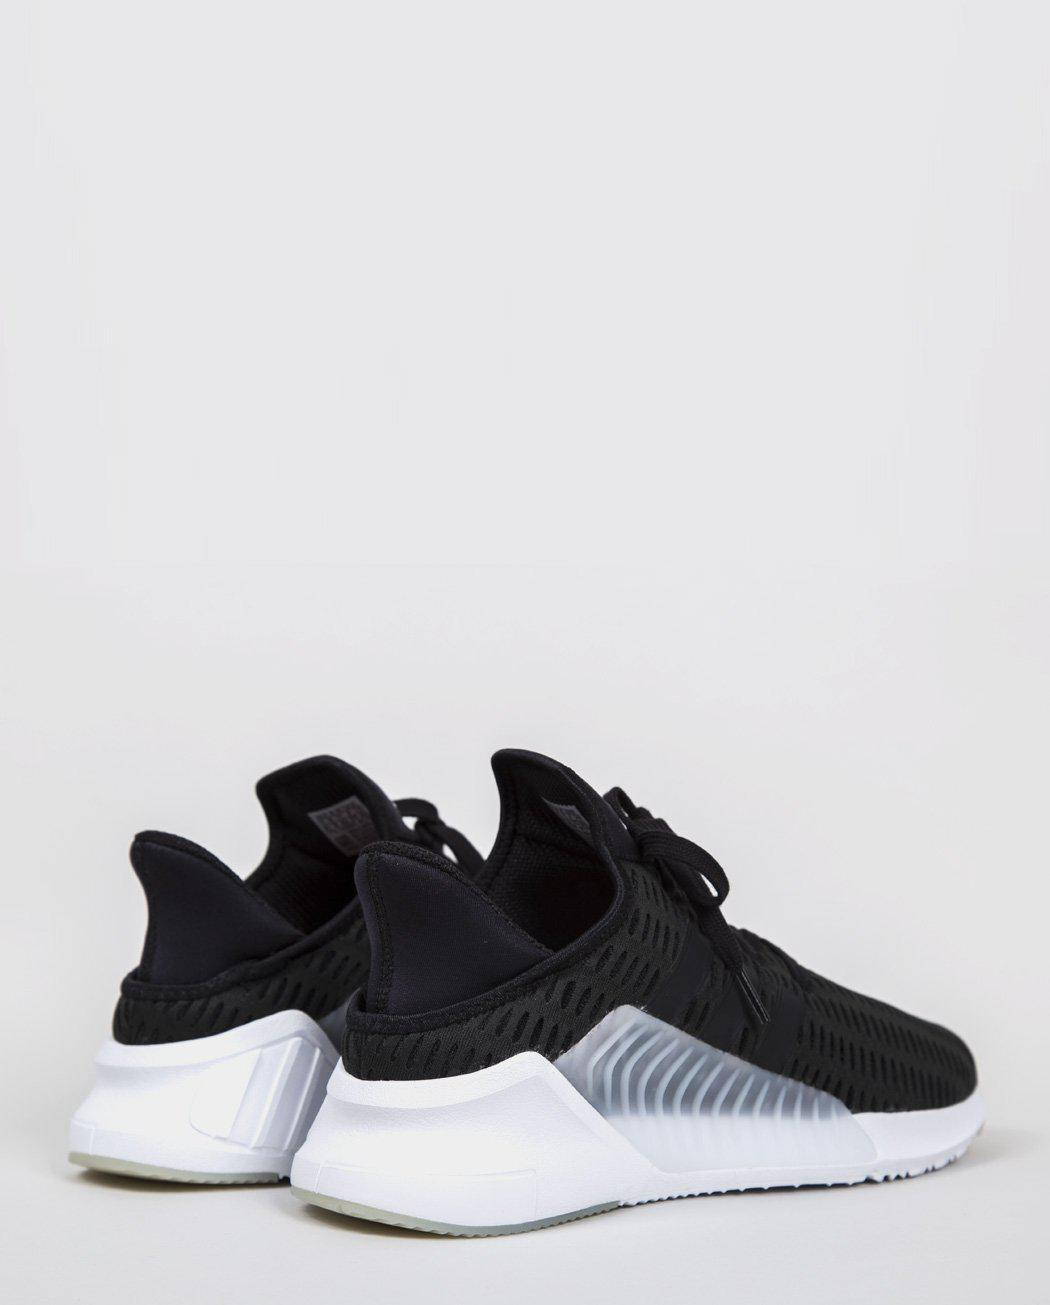 best service 4b08a 12e5e Adidas Originals Black Adidas Climacool 2 (bz0249) for men